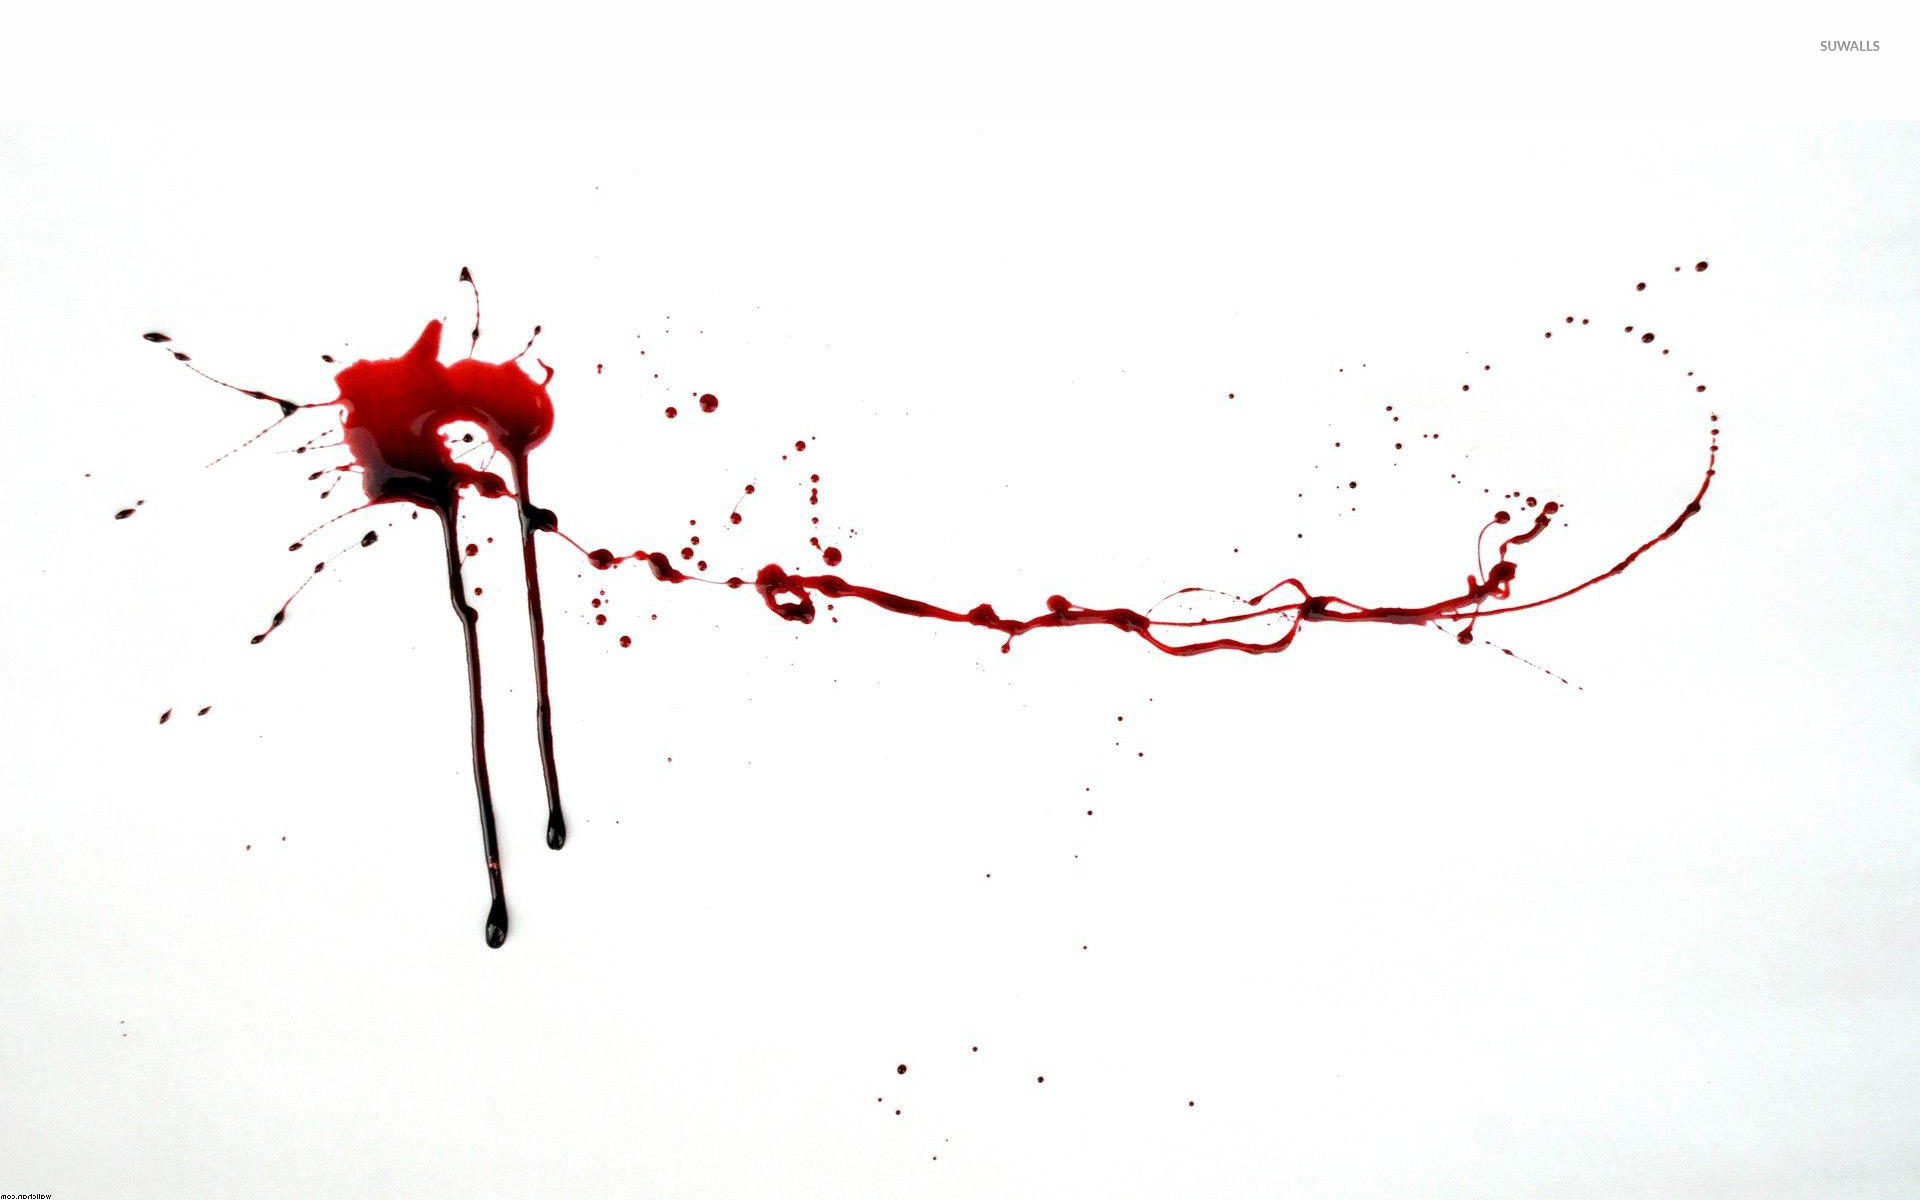 Blood spatter wallpaper - Abstract wallpapers - #27544